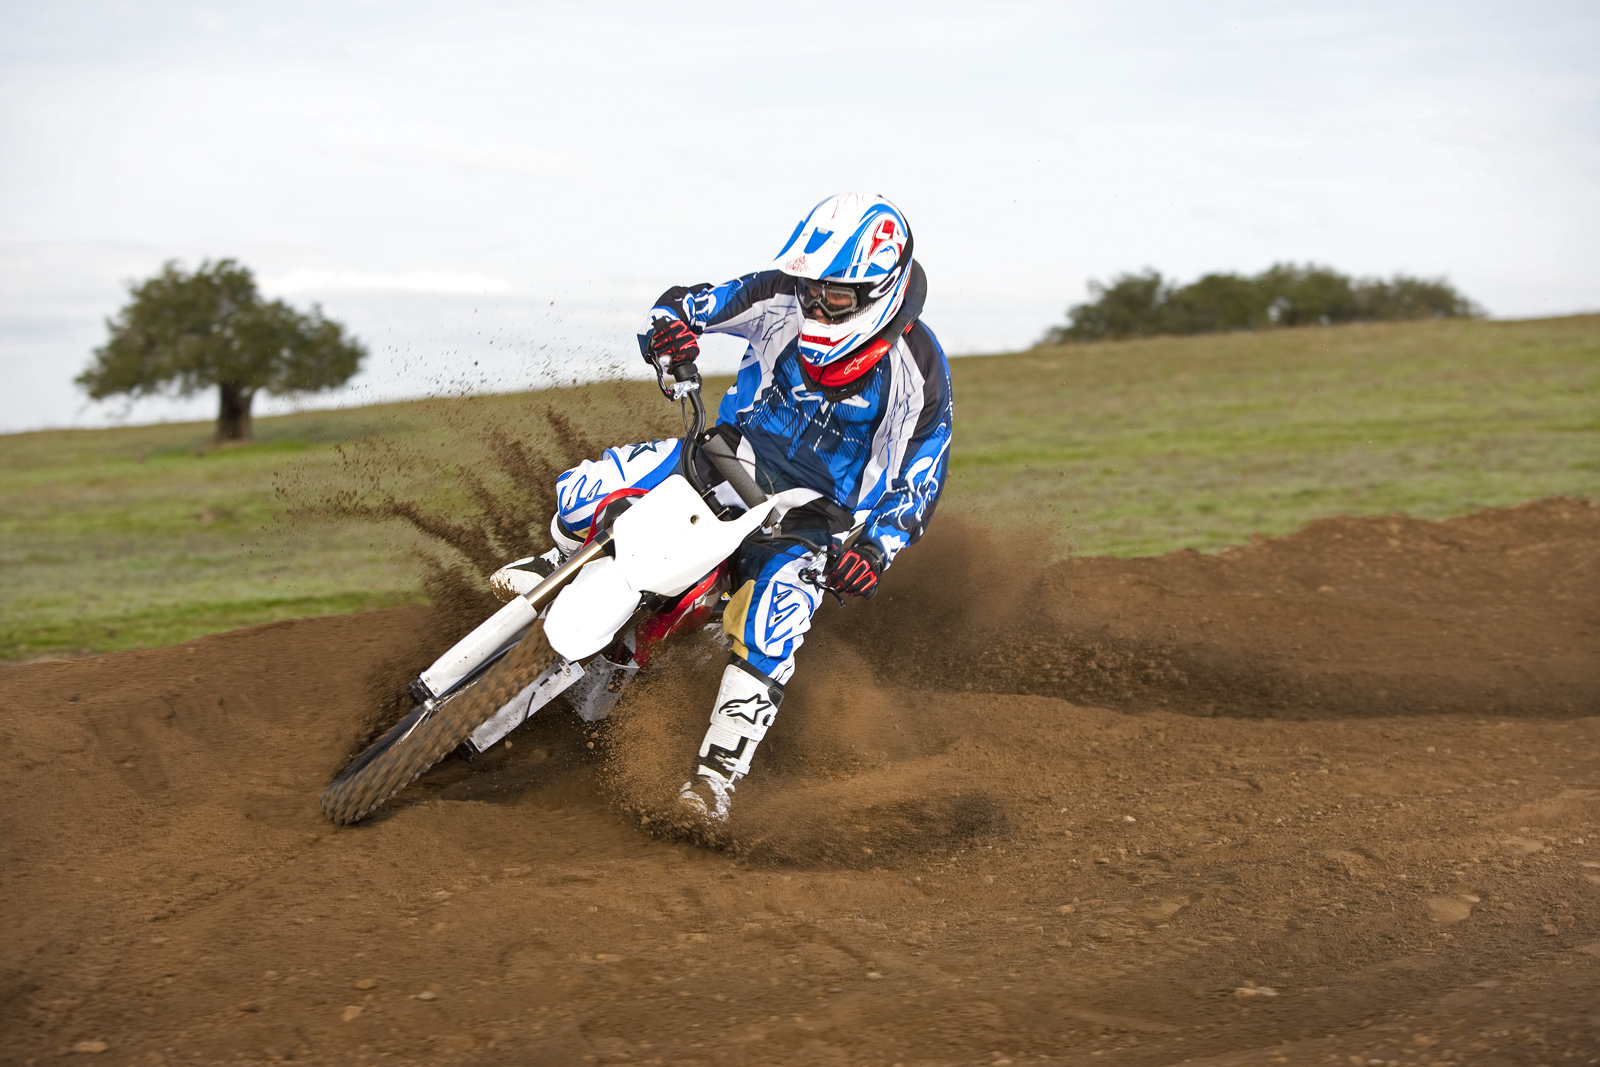 '.2010 Zero MX Electric Motorcycle: Zaca Station - Rider Hits Corner.'